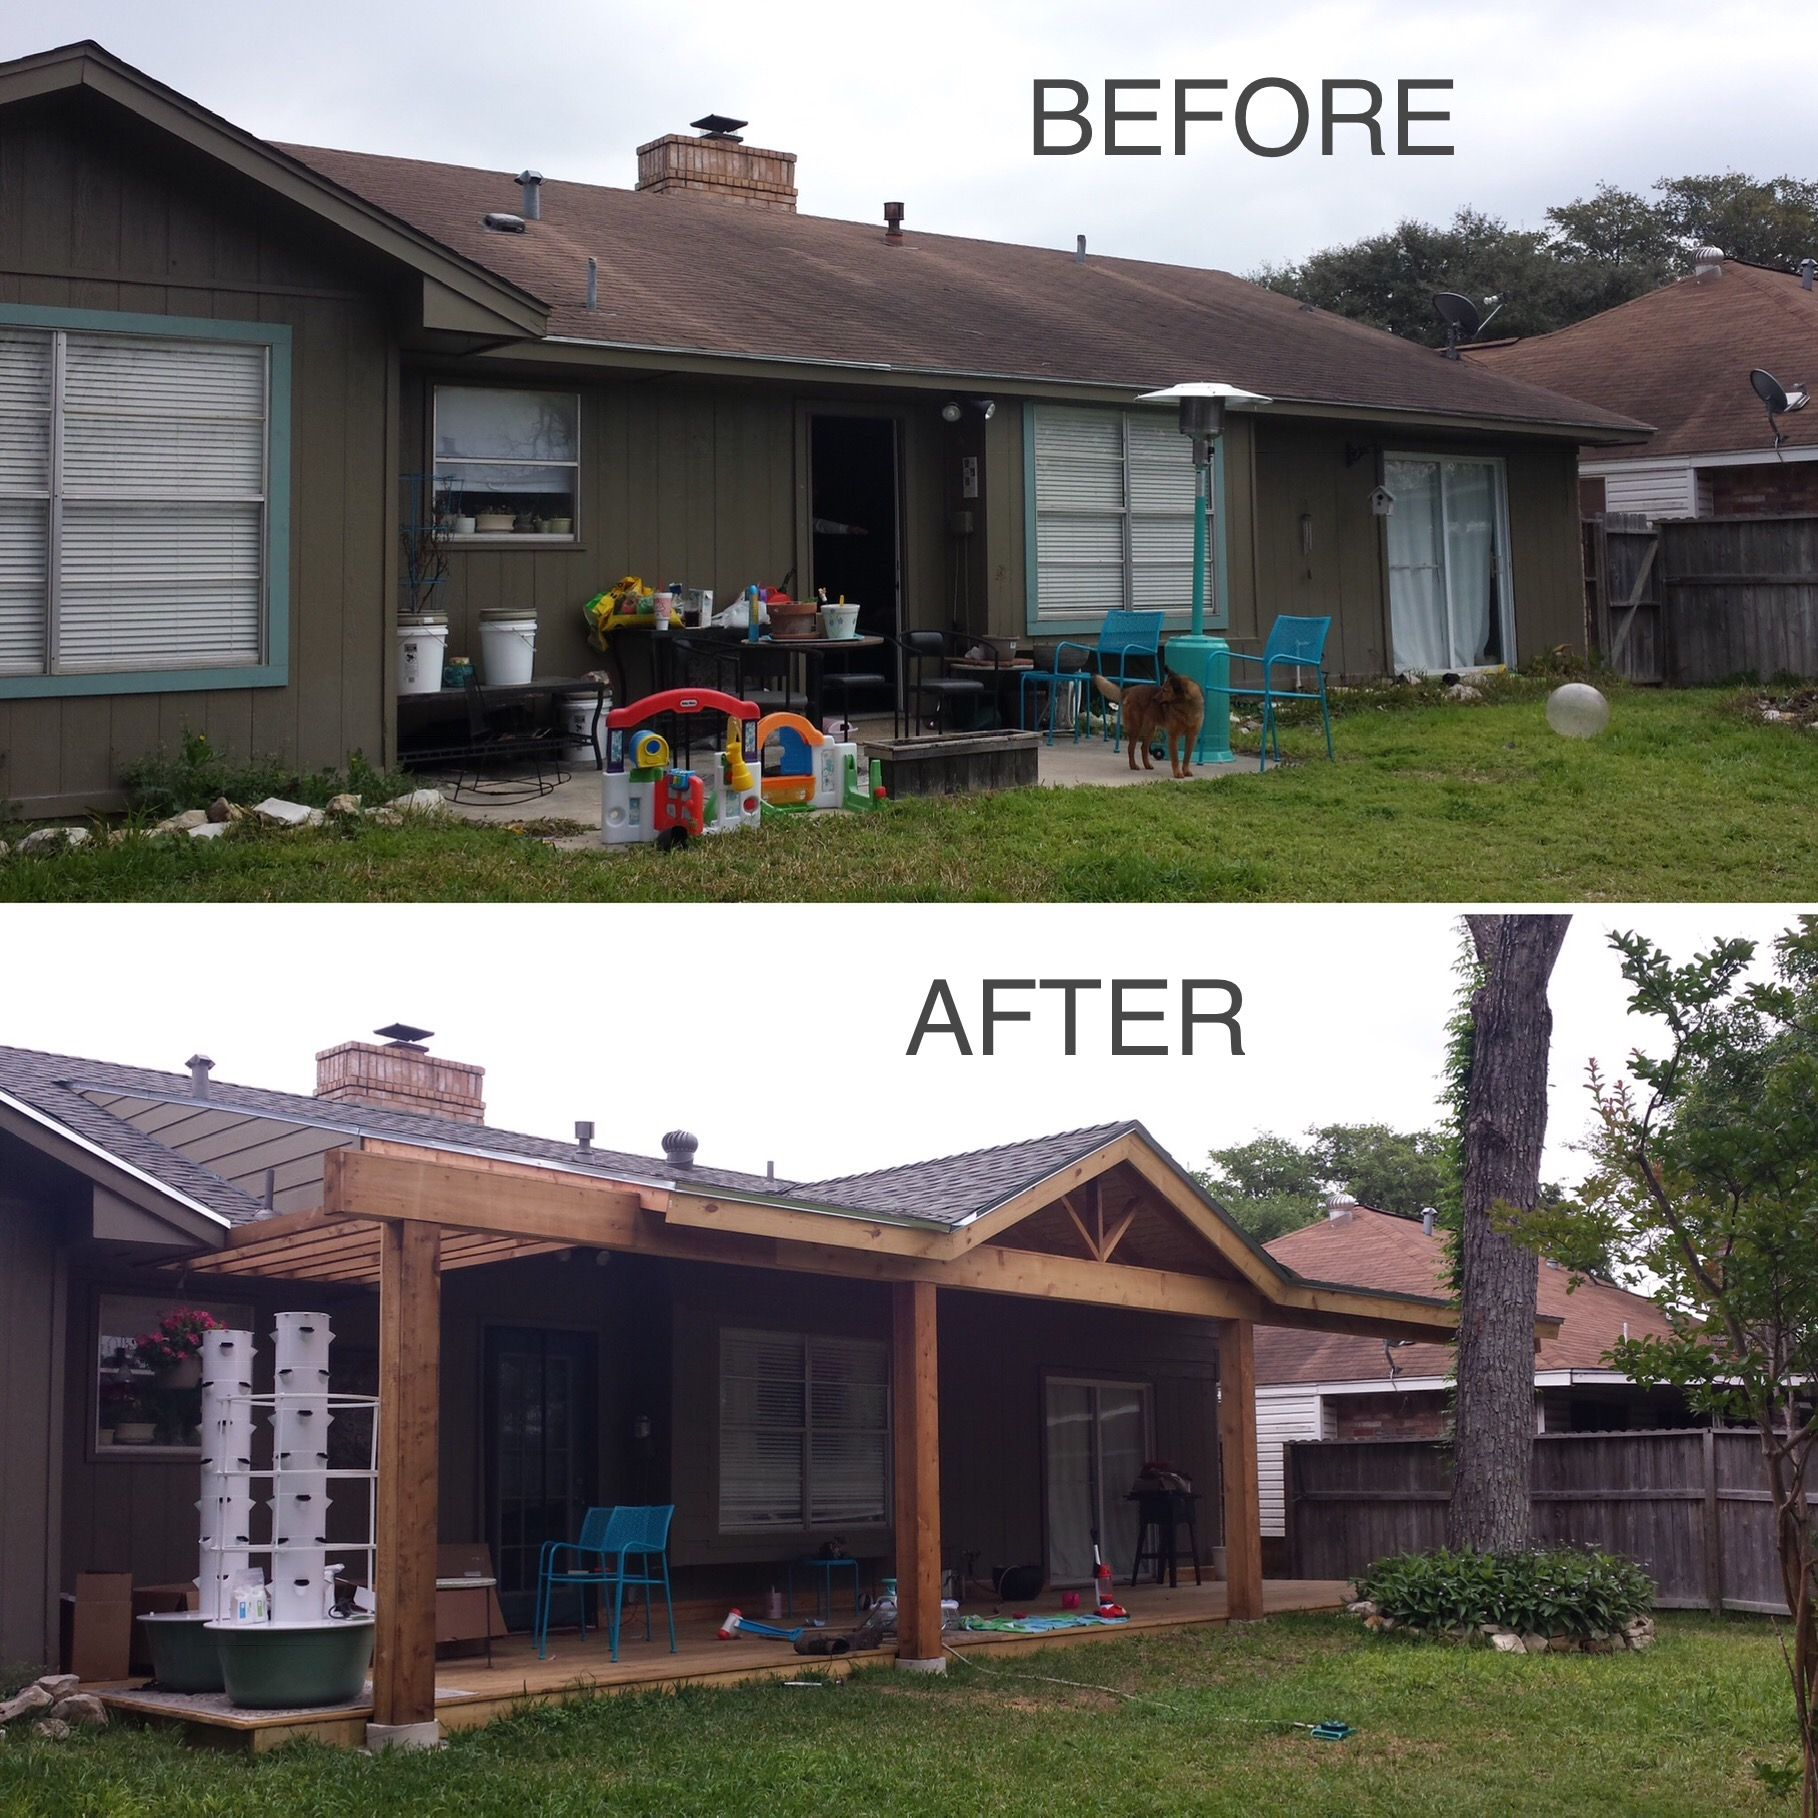 This customer wanted something a little different, so we sat down and came up with a design that incorporated a gable, pergola, deck, and exposed rafters. We also replaced the roof on the house, and installed the matching roof on the patio cover.